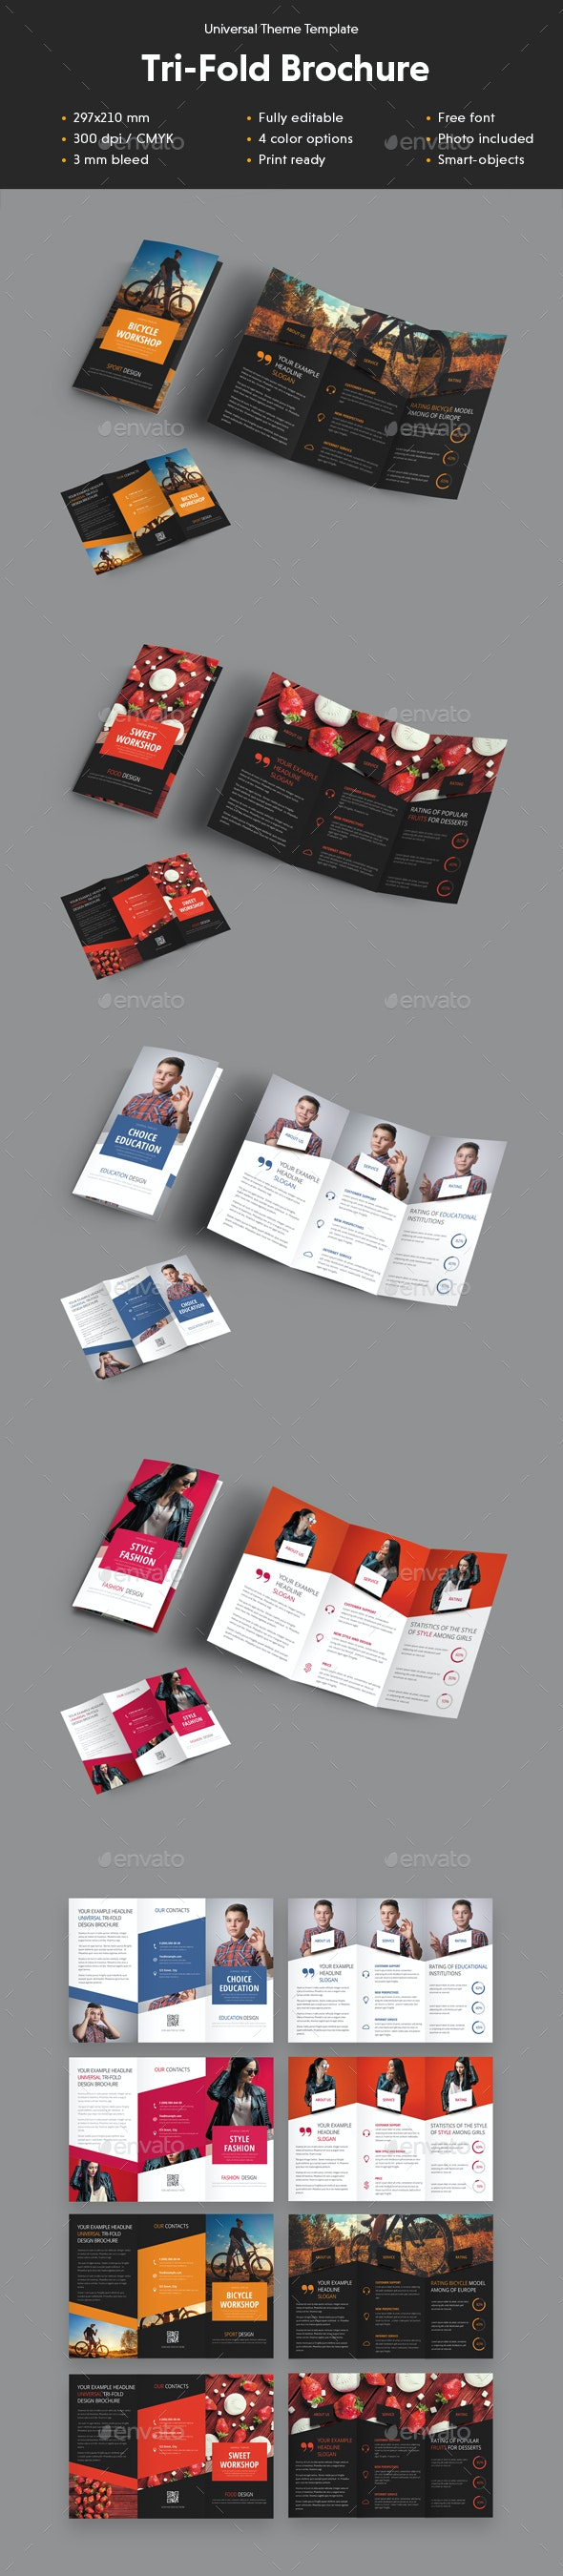 Universal Tri-Fold Brochure With Diagonal Design Elements - Brochures Print Templates